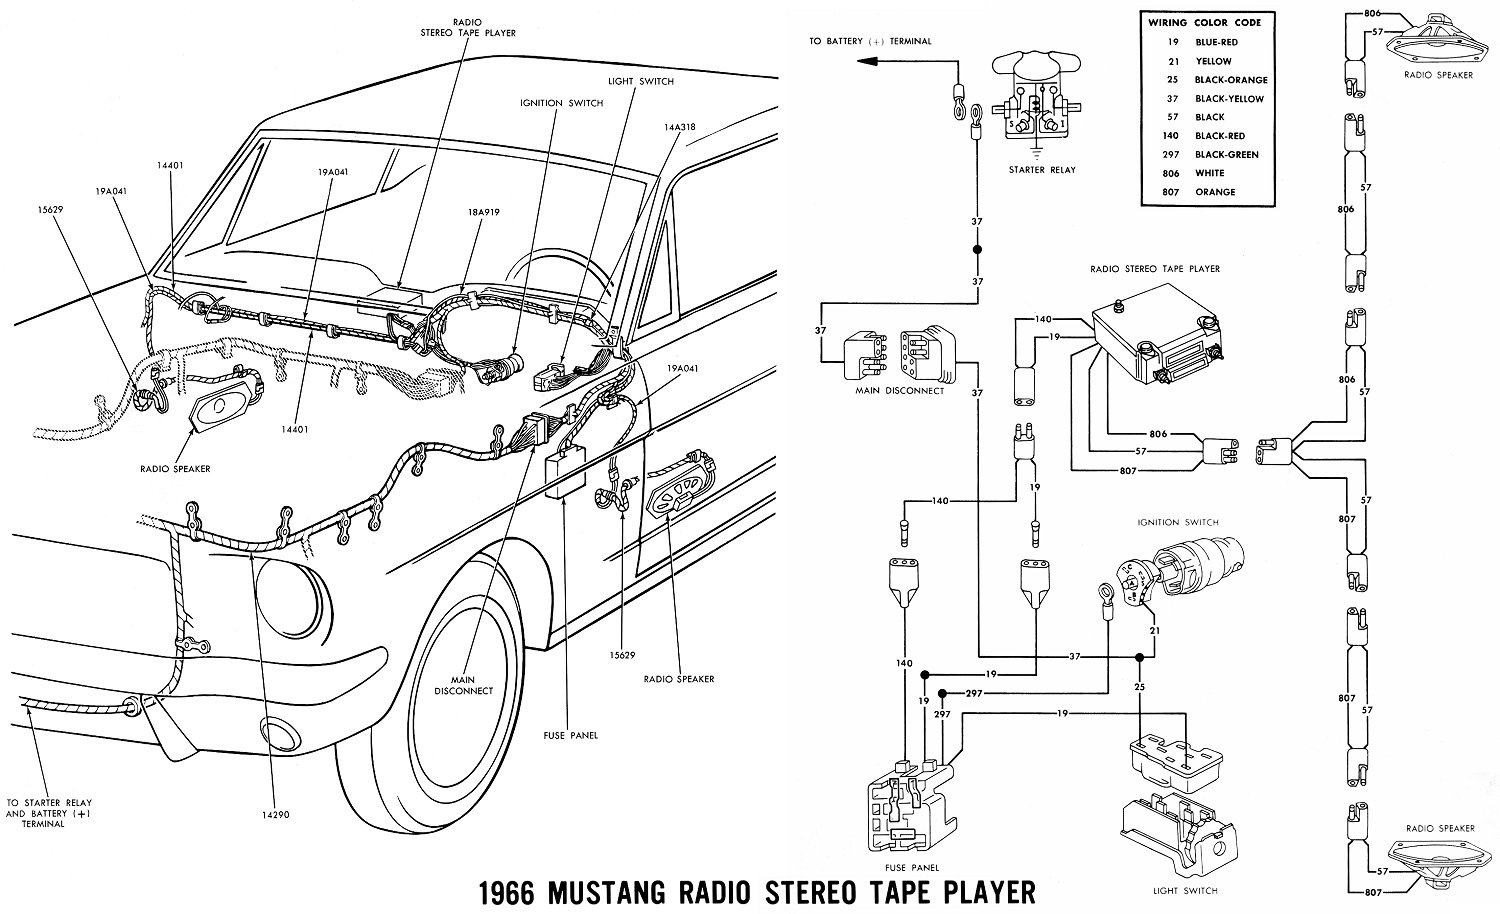 vintage mustang wiring diagrams 66 Mustang Brake Diagram 66 accessories schematic · 66 stereo tape player details · 66 power convertible top details